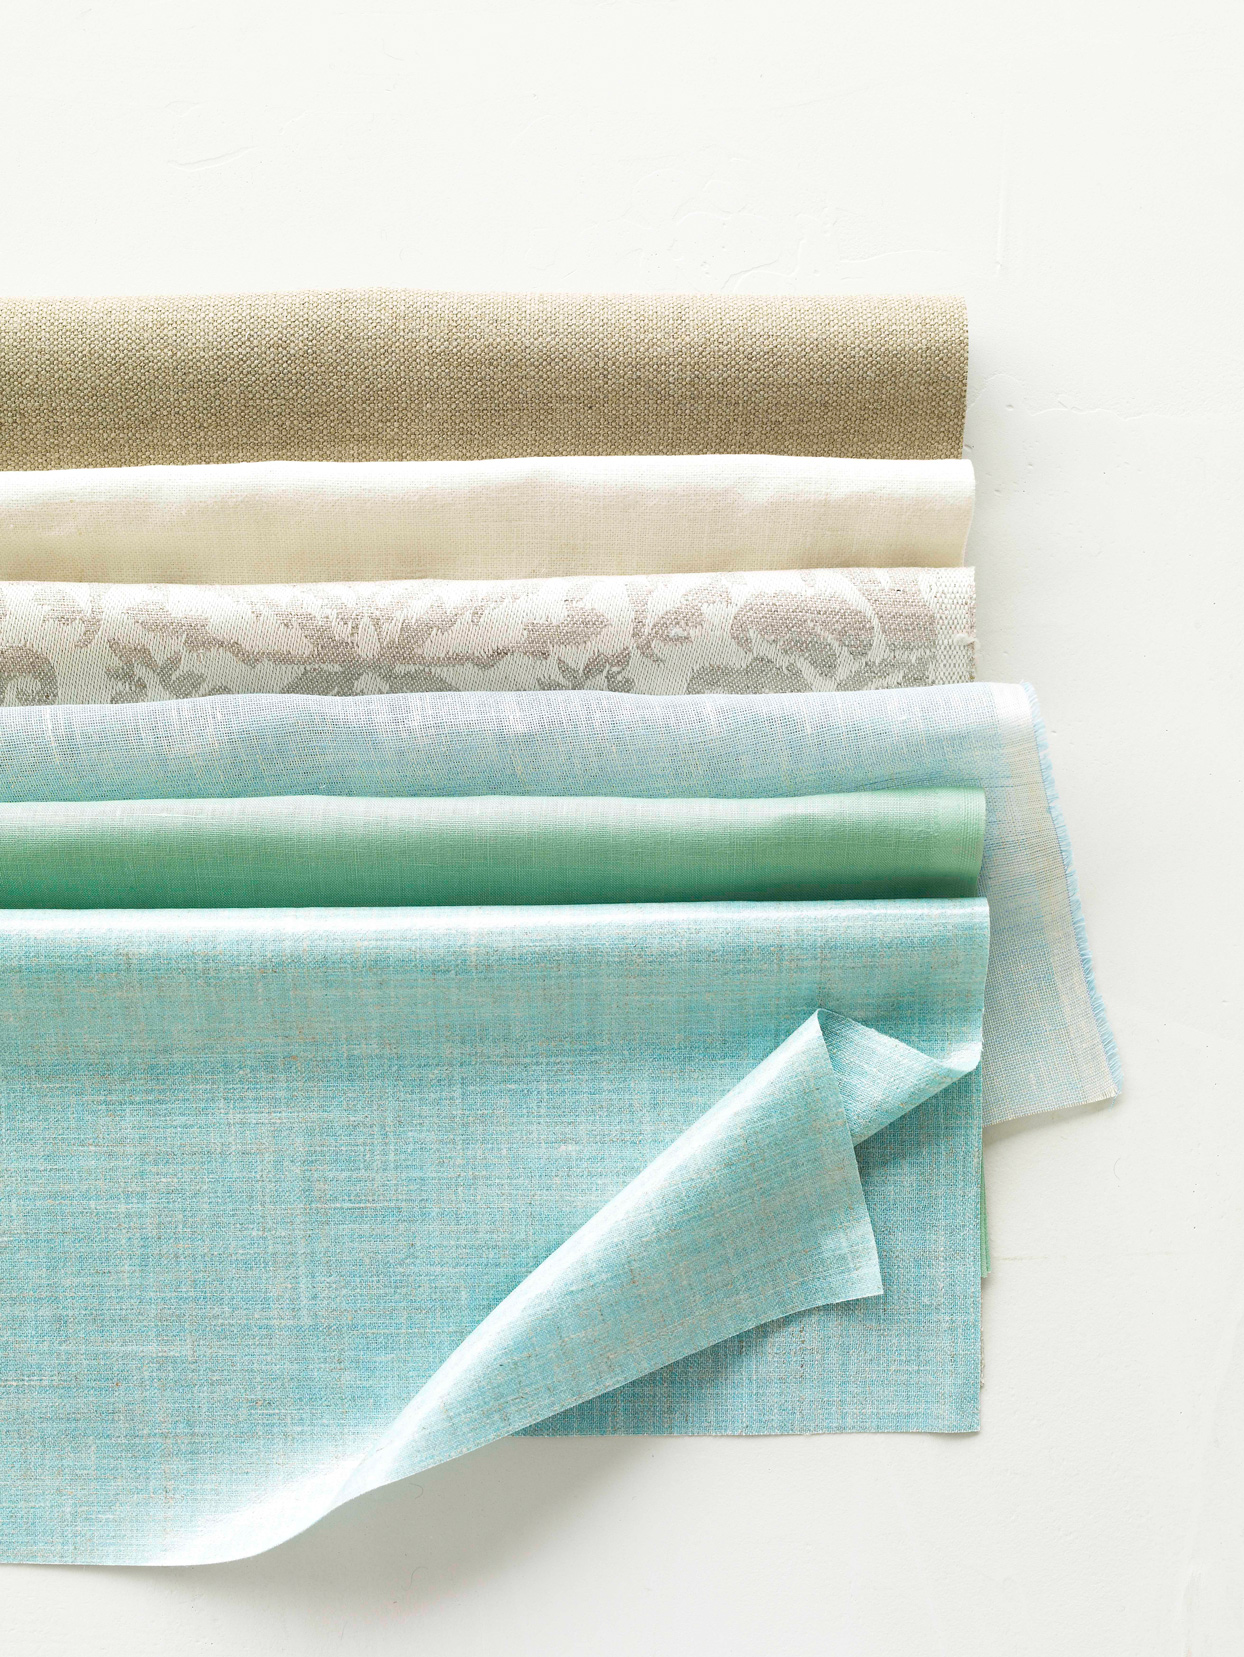 blue and tan hued linen fabric